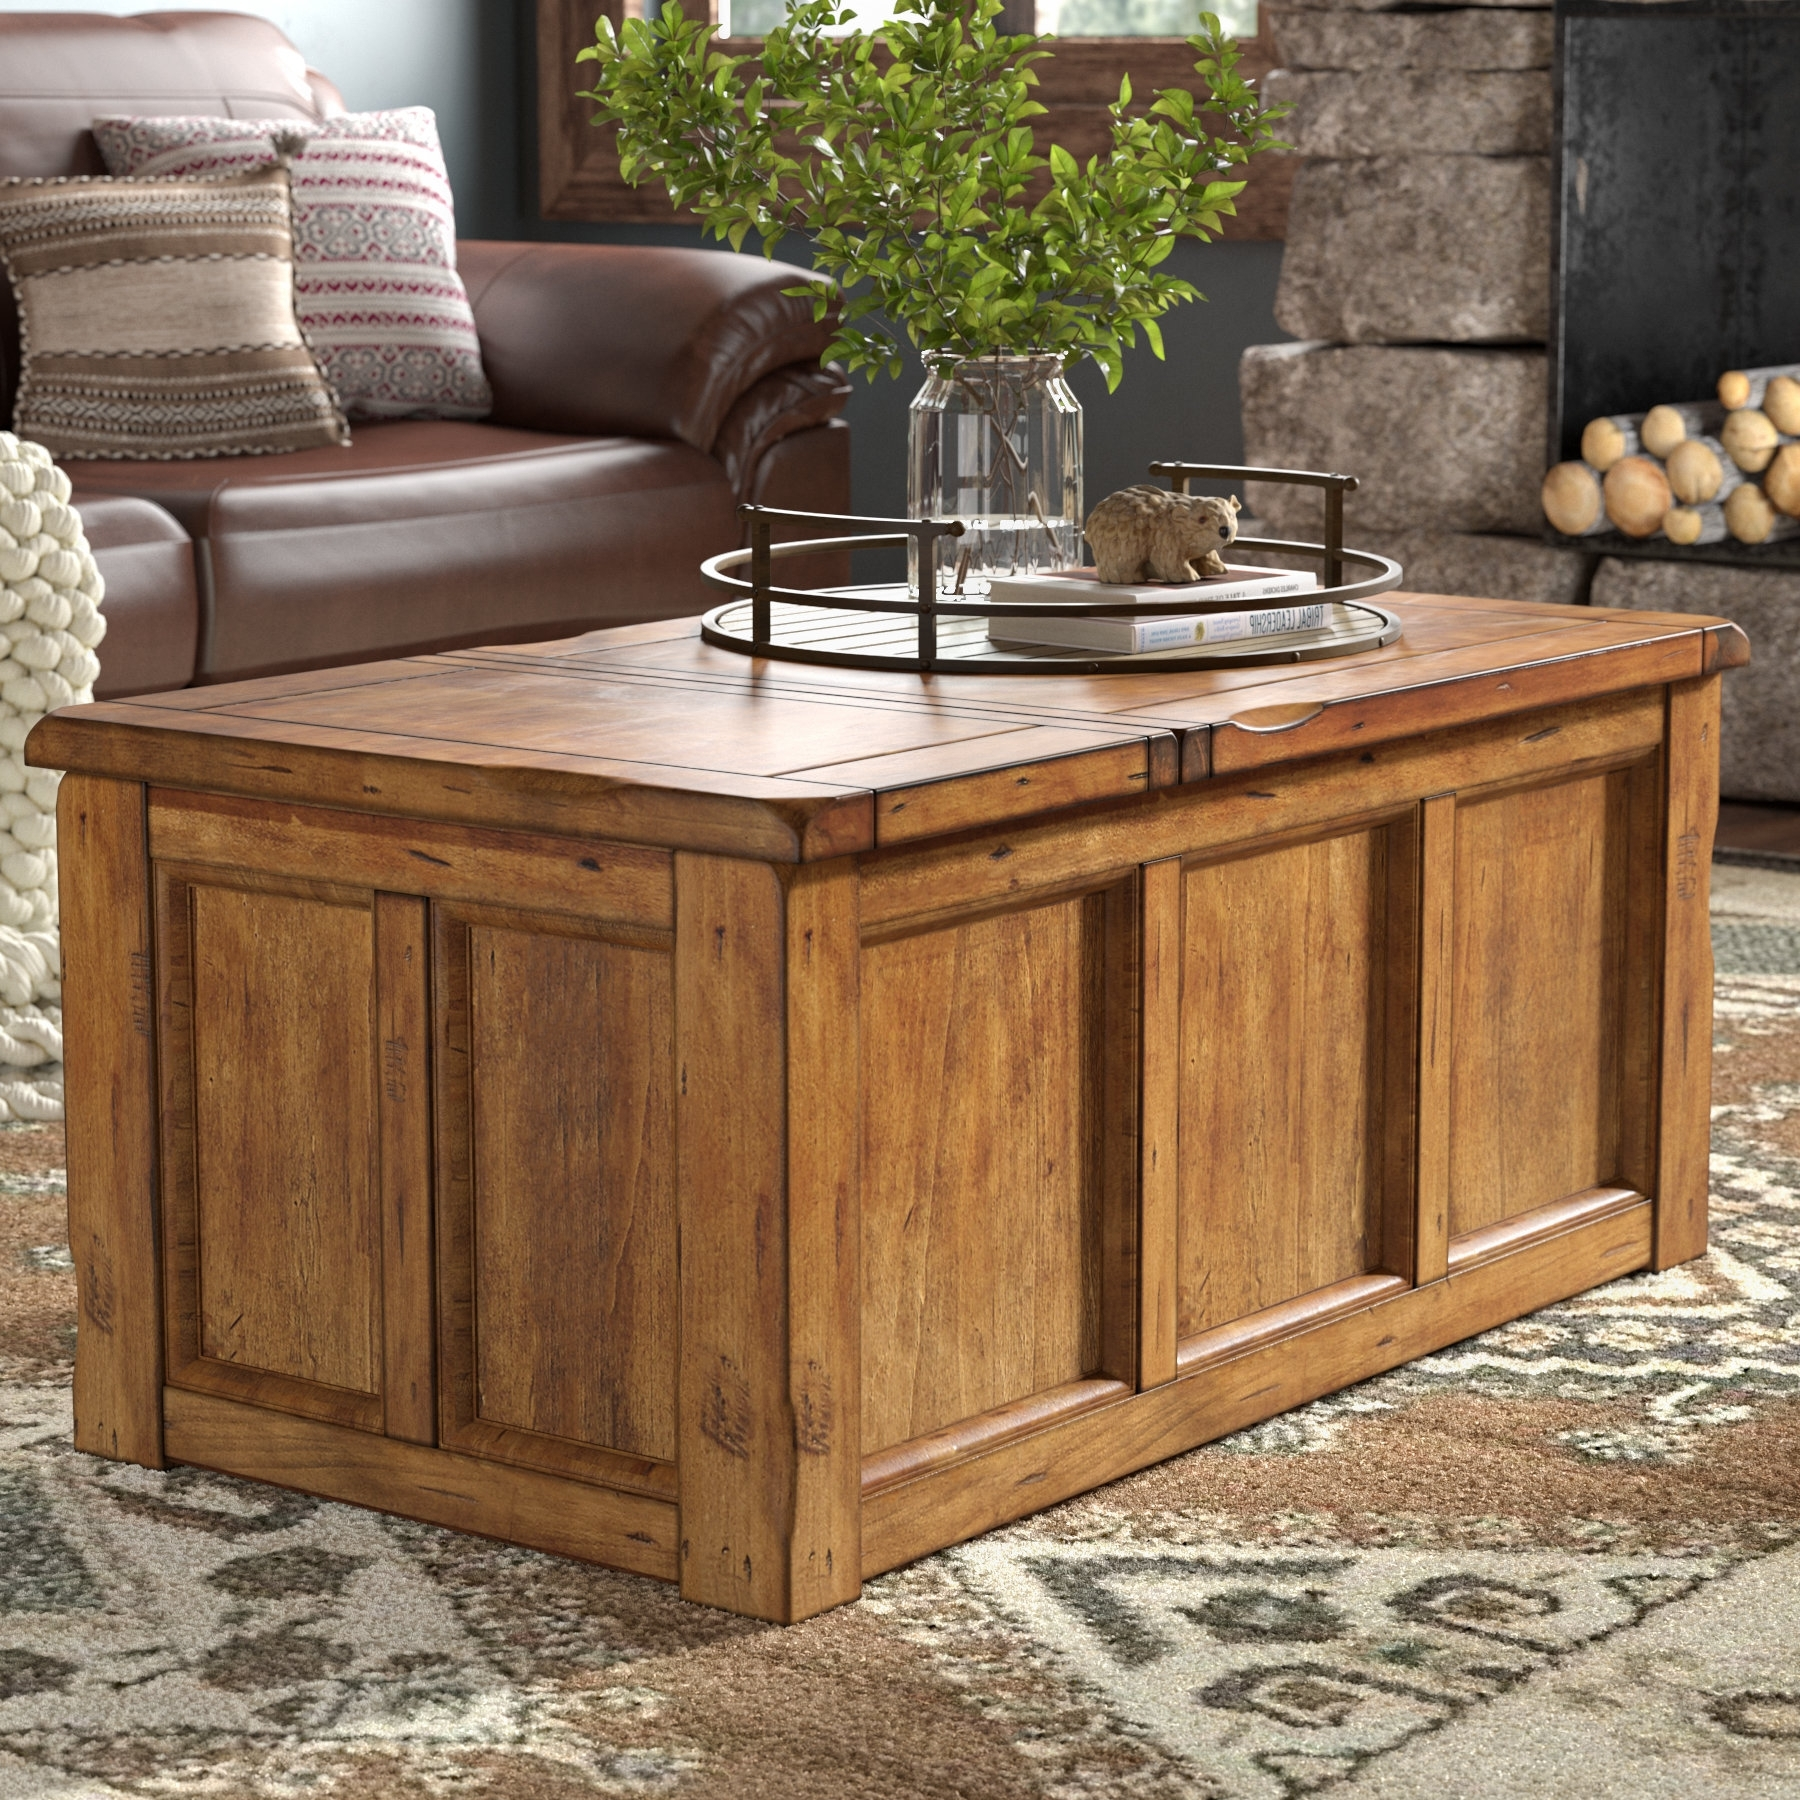 Most Current Chiseled Edge Coffee Tables In Laurel Foundry Modern Farmhouse Baggarly Coffee Table With Lift Top (View 12 of 20)